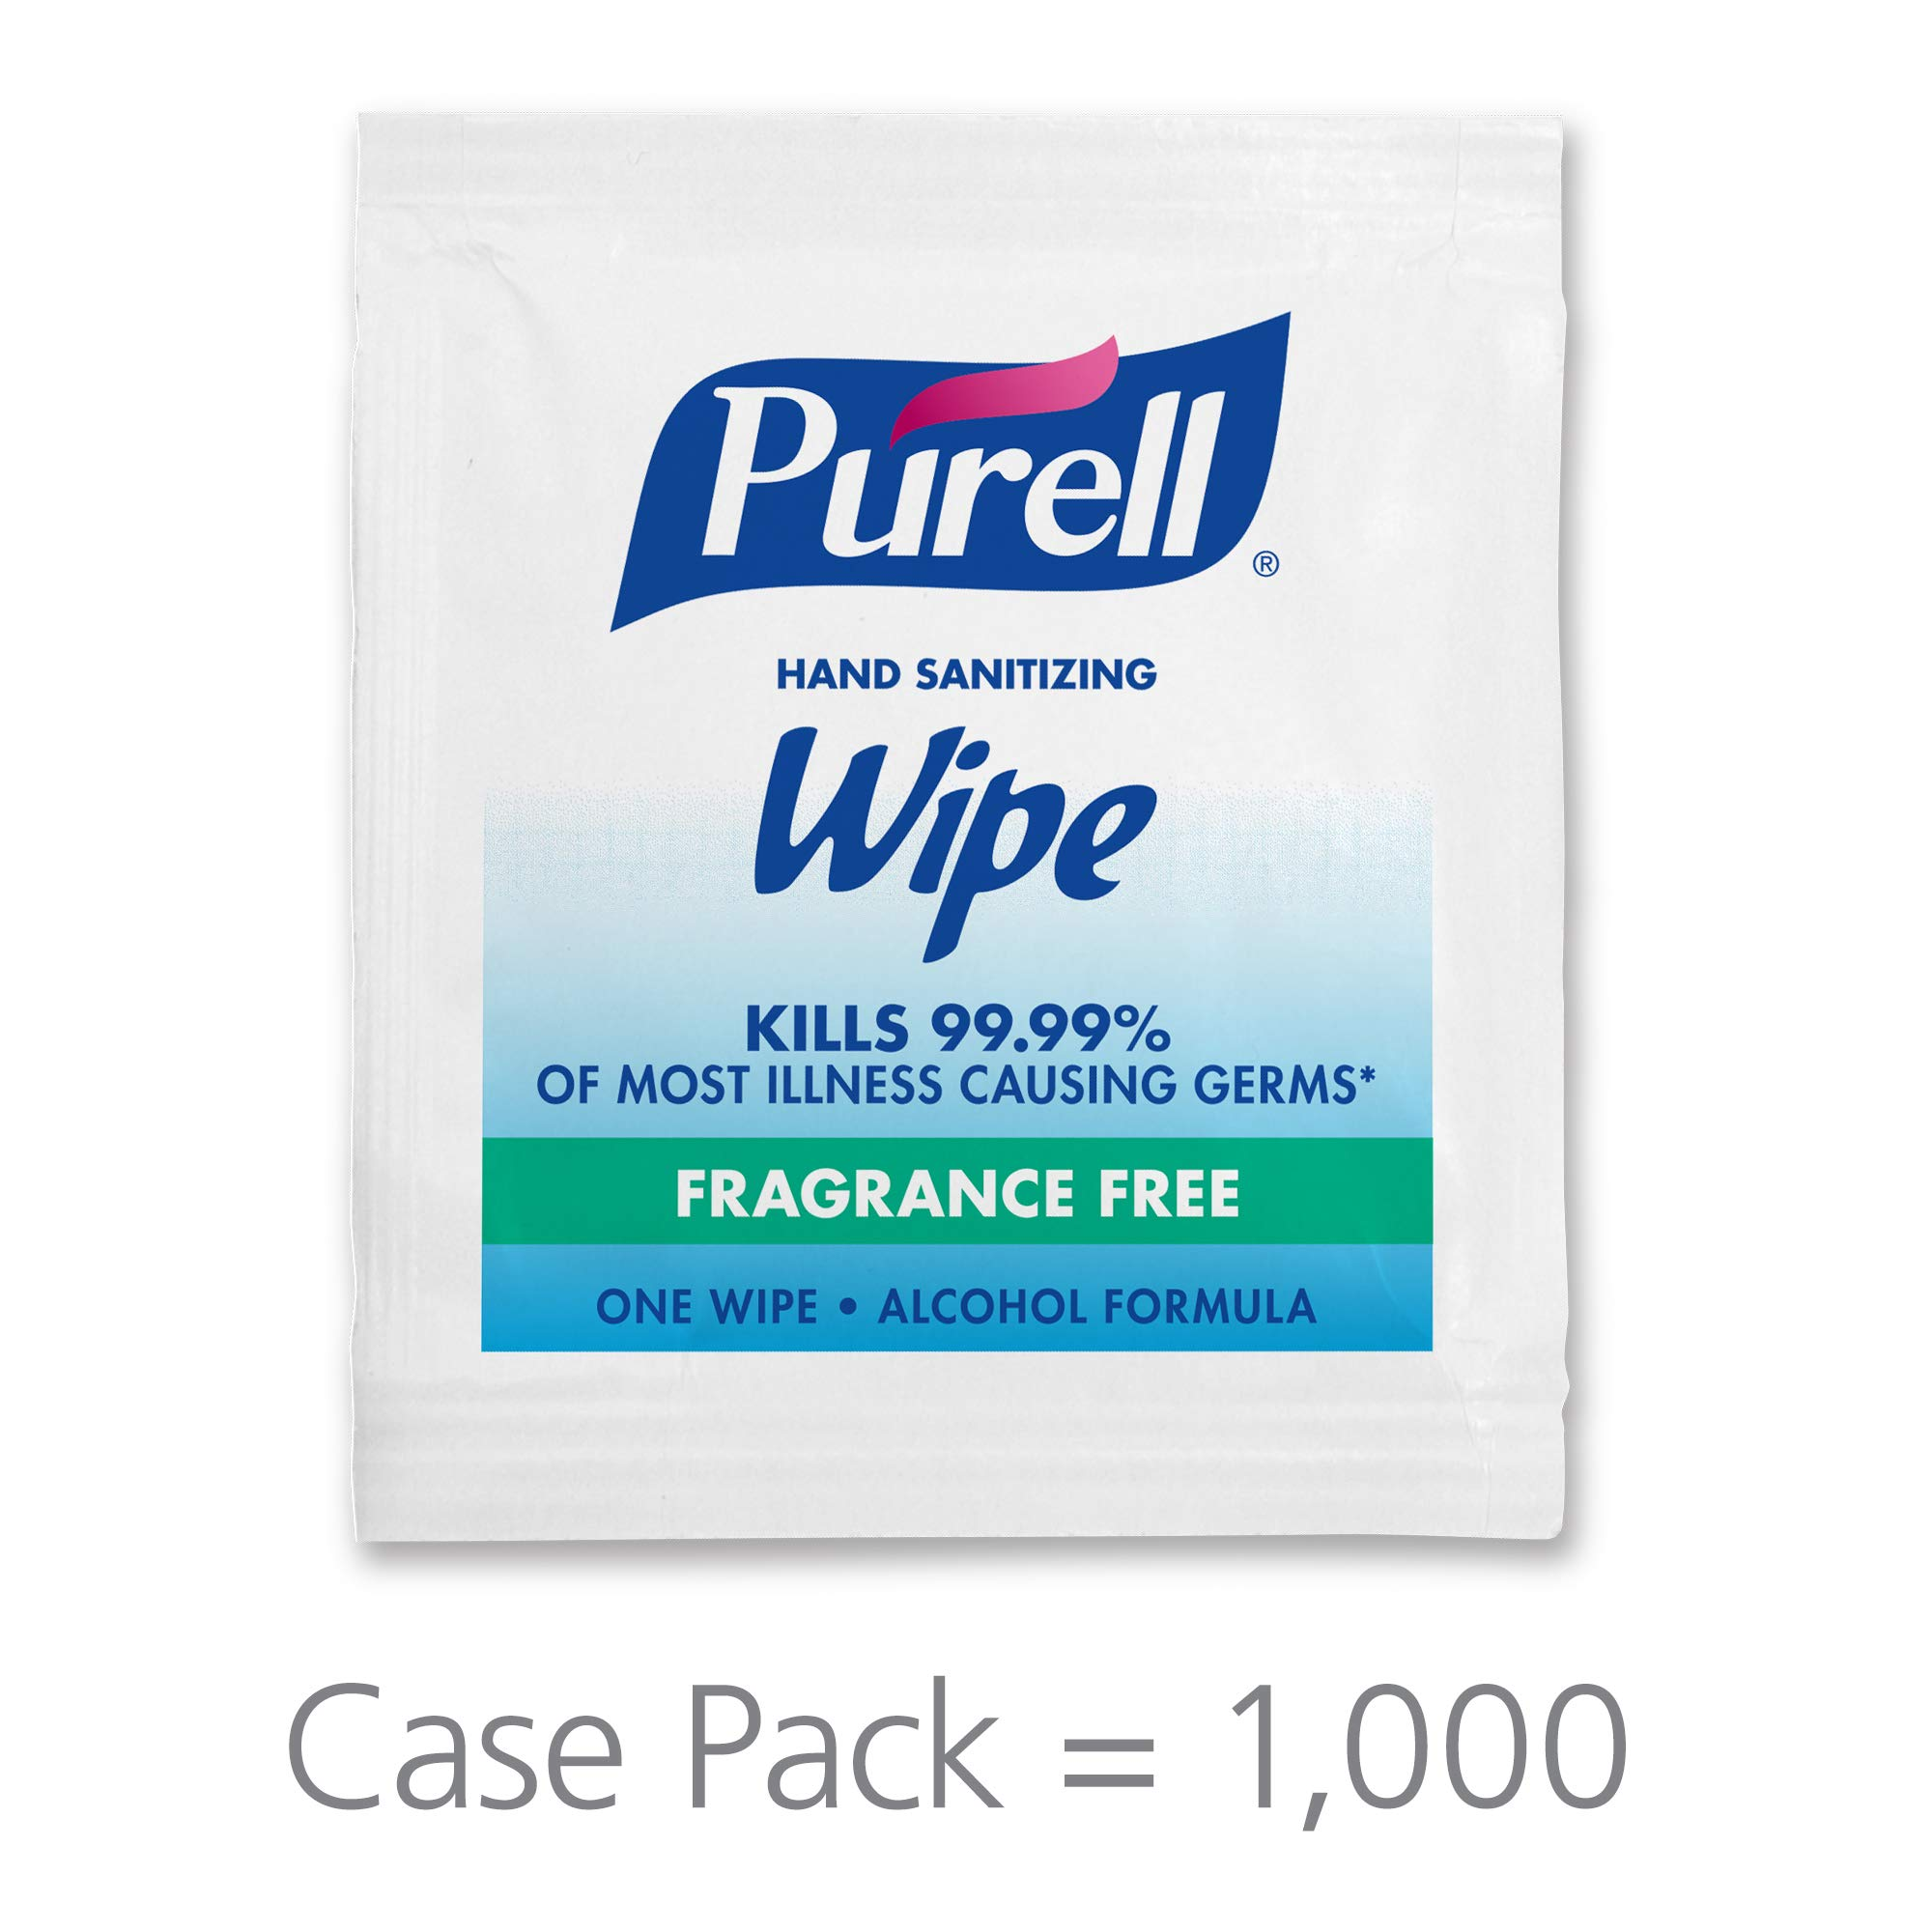 PURELL Hand Sanitizing Wipes Alcohol Formula, Fragrance Free, 1000 Individually Wrapped Hand Sanitizing Wipes Packets - 9021-1M by Purell